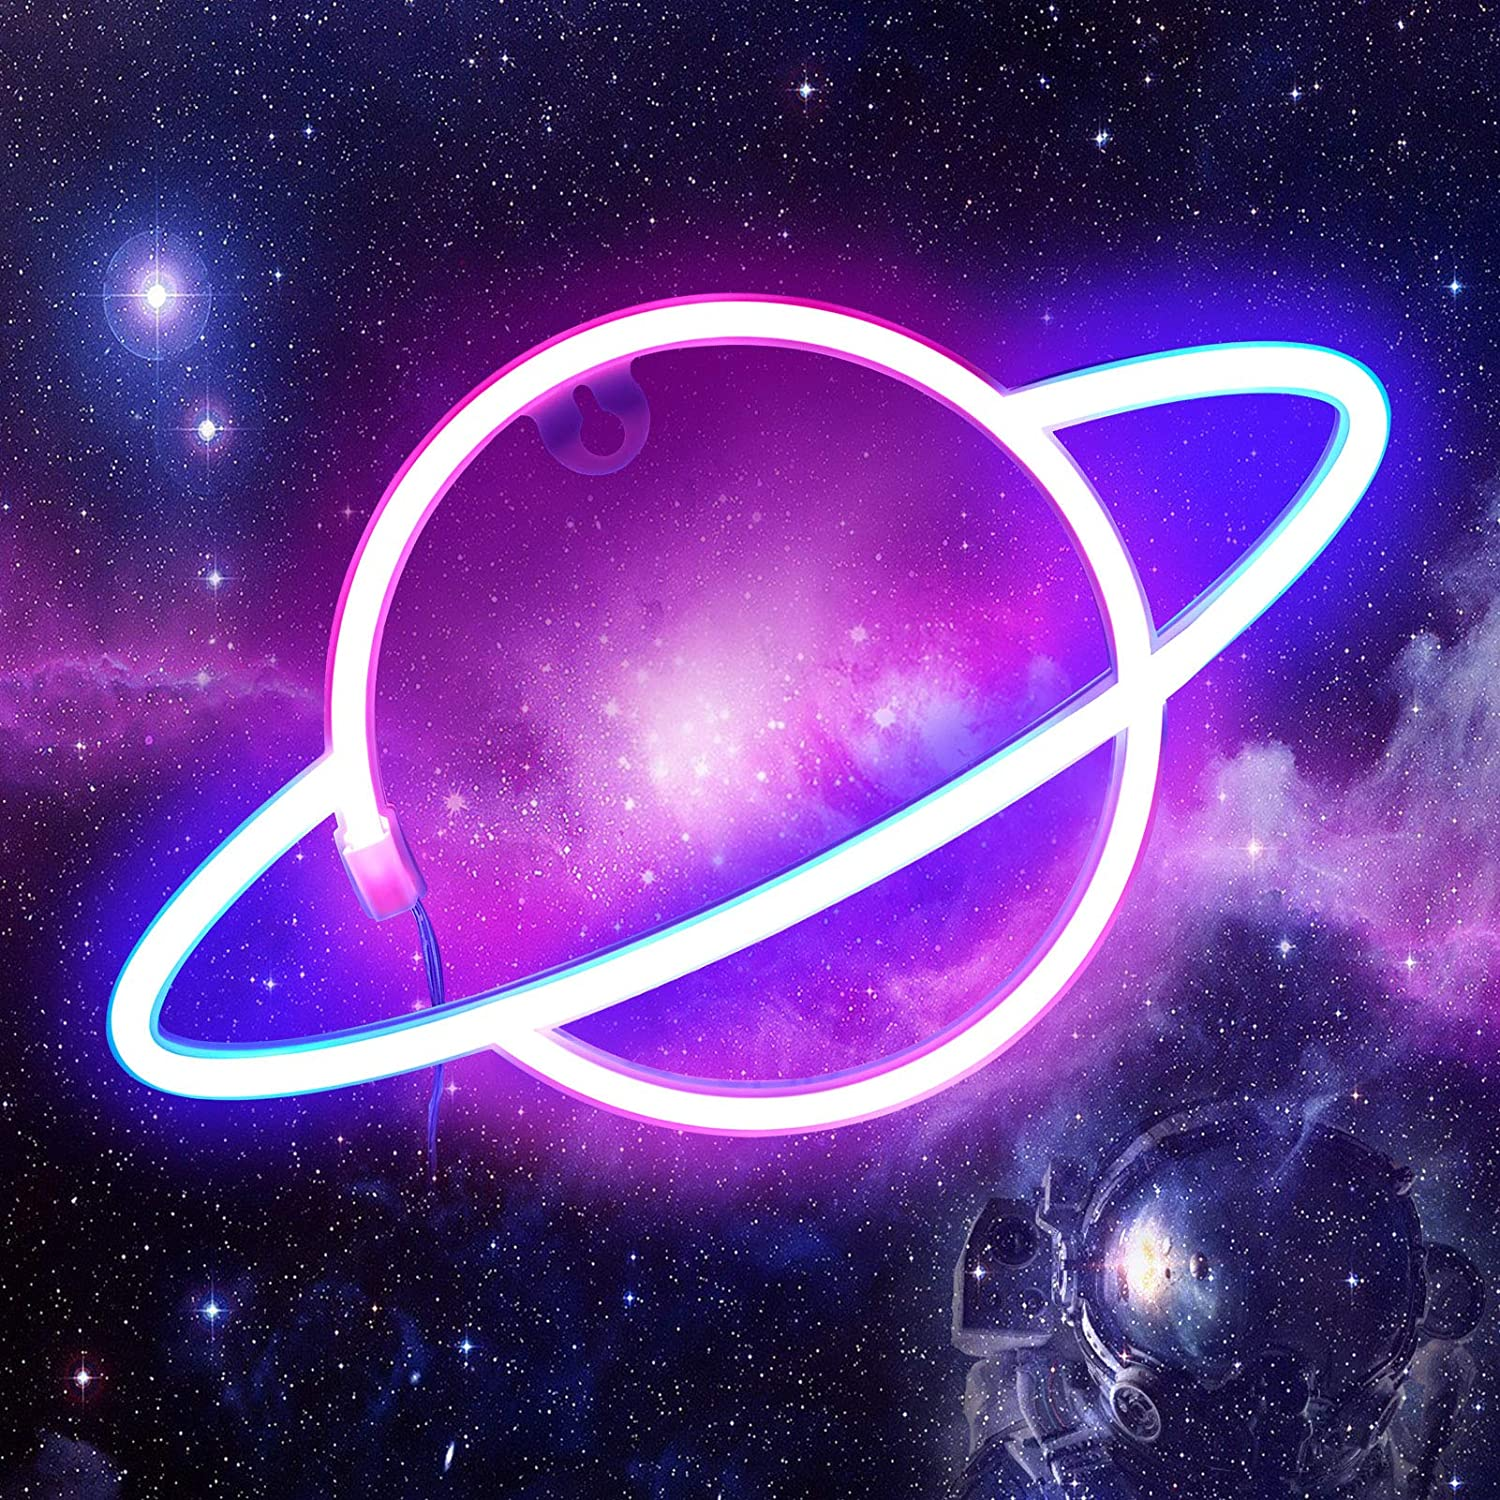 Planet Neon Light Signs - ORHOMELIFE Pink/Blue LED Neon Sign Wall Decor Neon Lamp Battery/USB Operated Planet Night Lights Signs for Bedroom, Kids Room, Christmas, Wedding, Birthday Party Decor